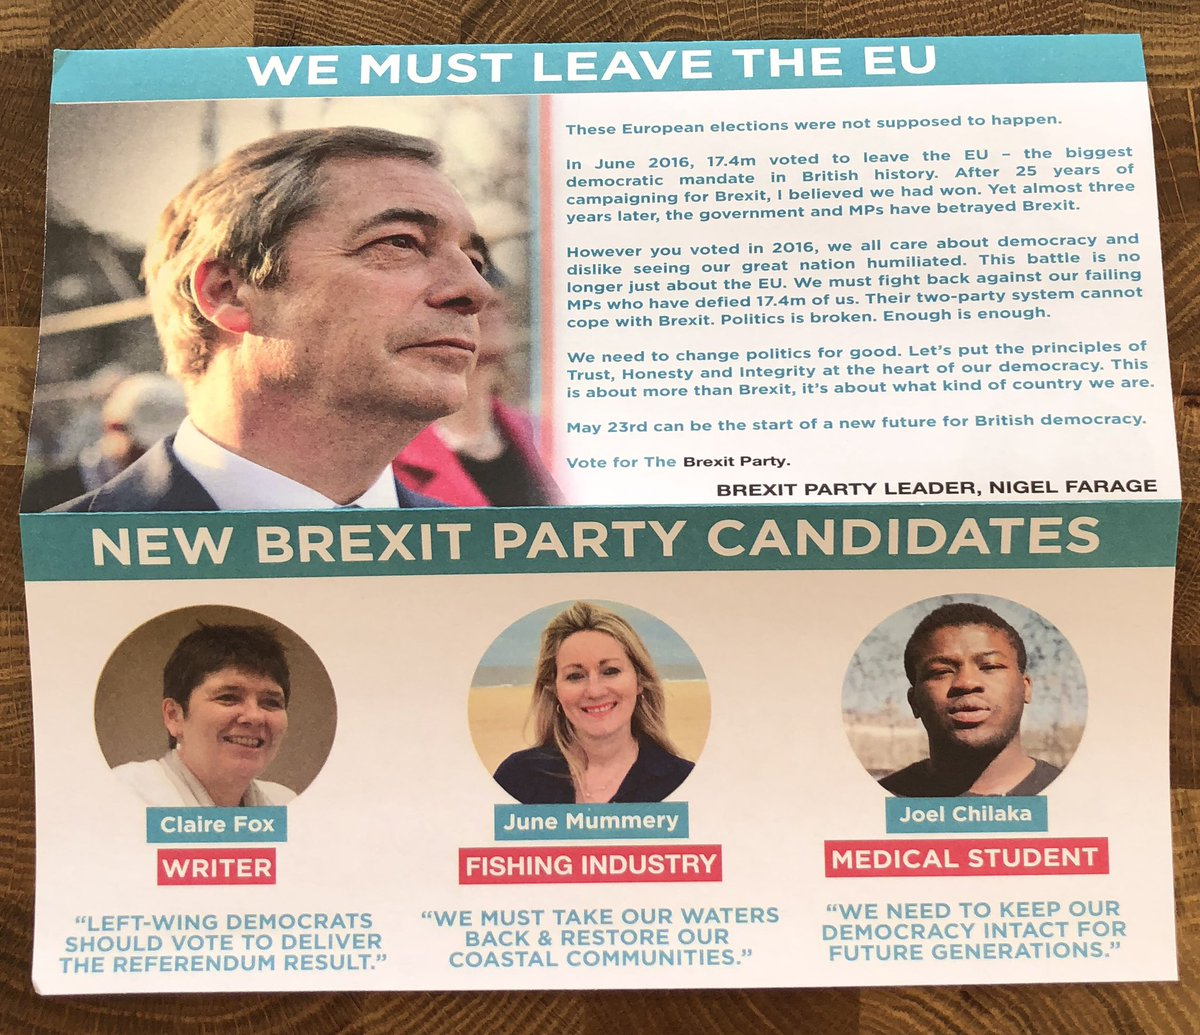 """Hilarious propaganda from the plastic politicians of  @brexitparty_uk """"we must leave the EU"""" when we were prevented from doing so by, the politicians! Democracy is dead, you have lost trust and confidence. #clairefox #junemummery #joelchilika jokes! @mrjamesob #remain"""